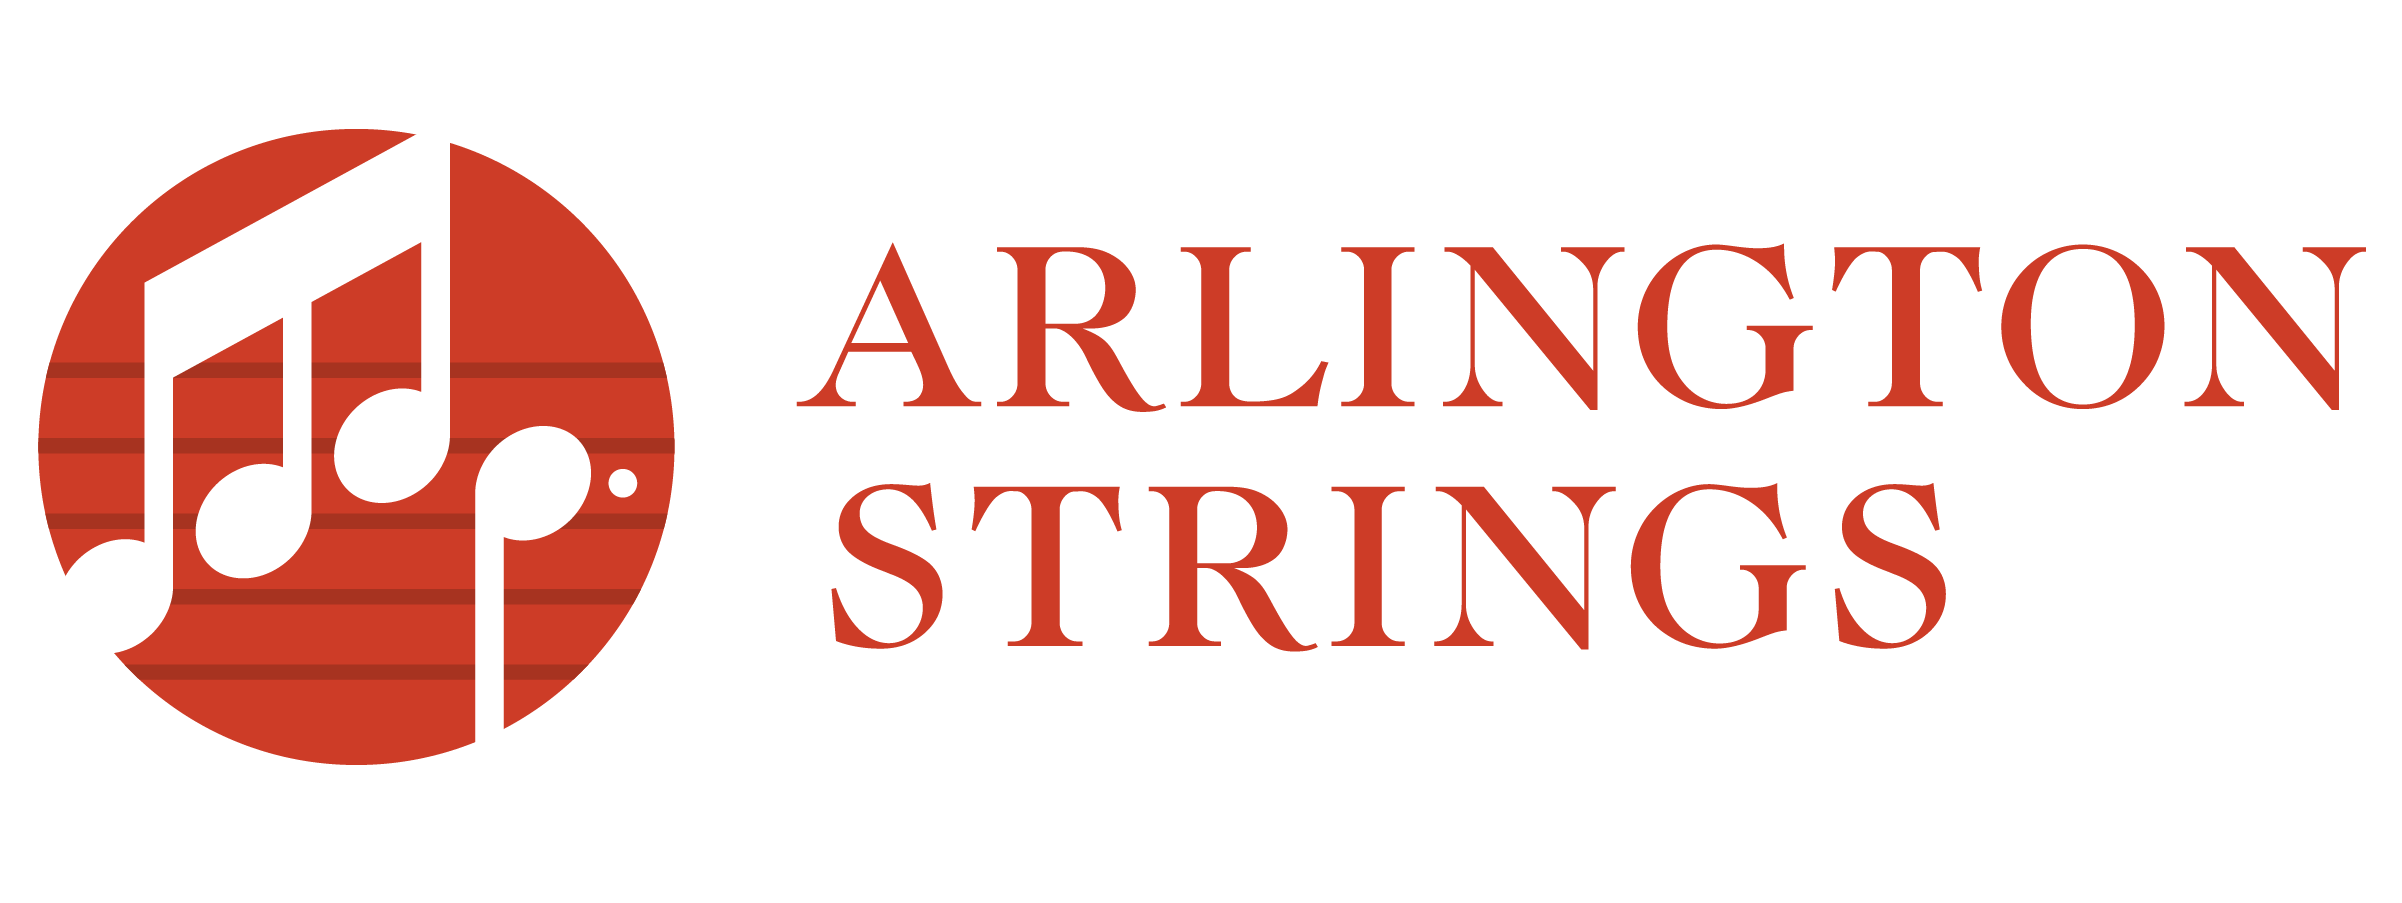 Arlington Strings